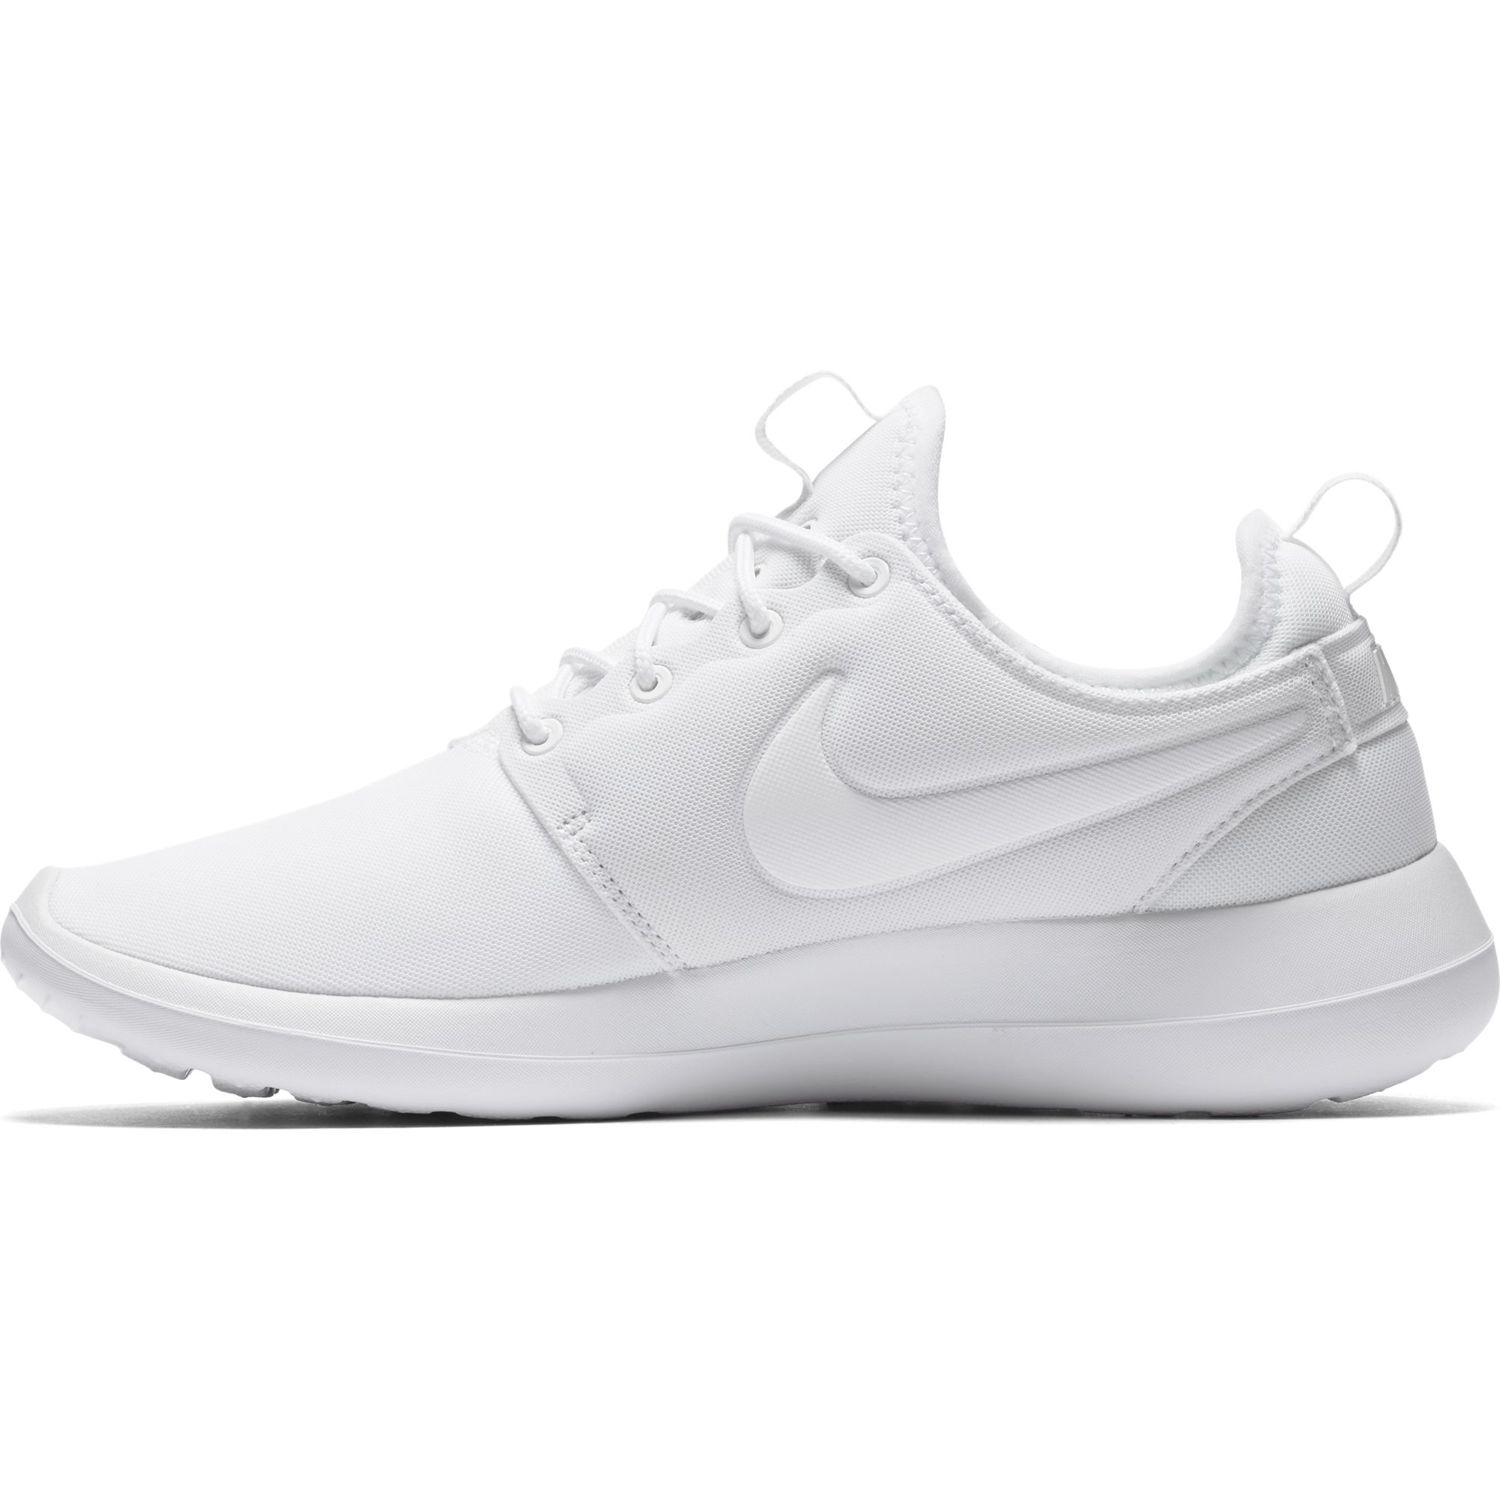 Nike Roshe Two White 844931 100